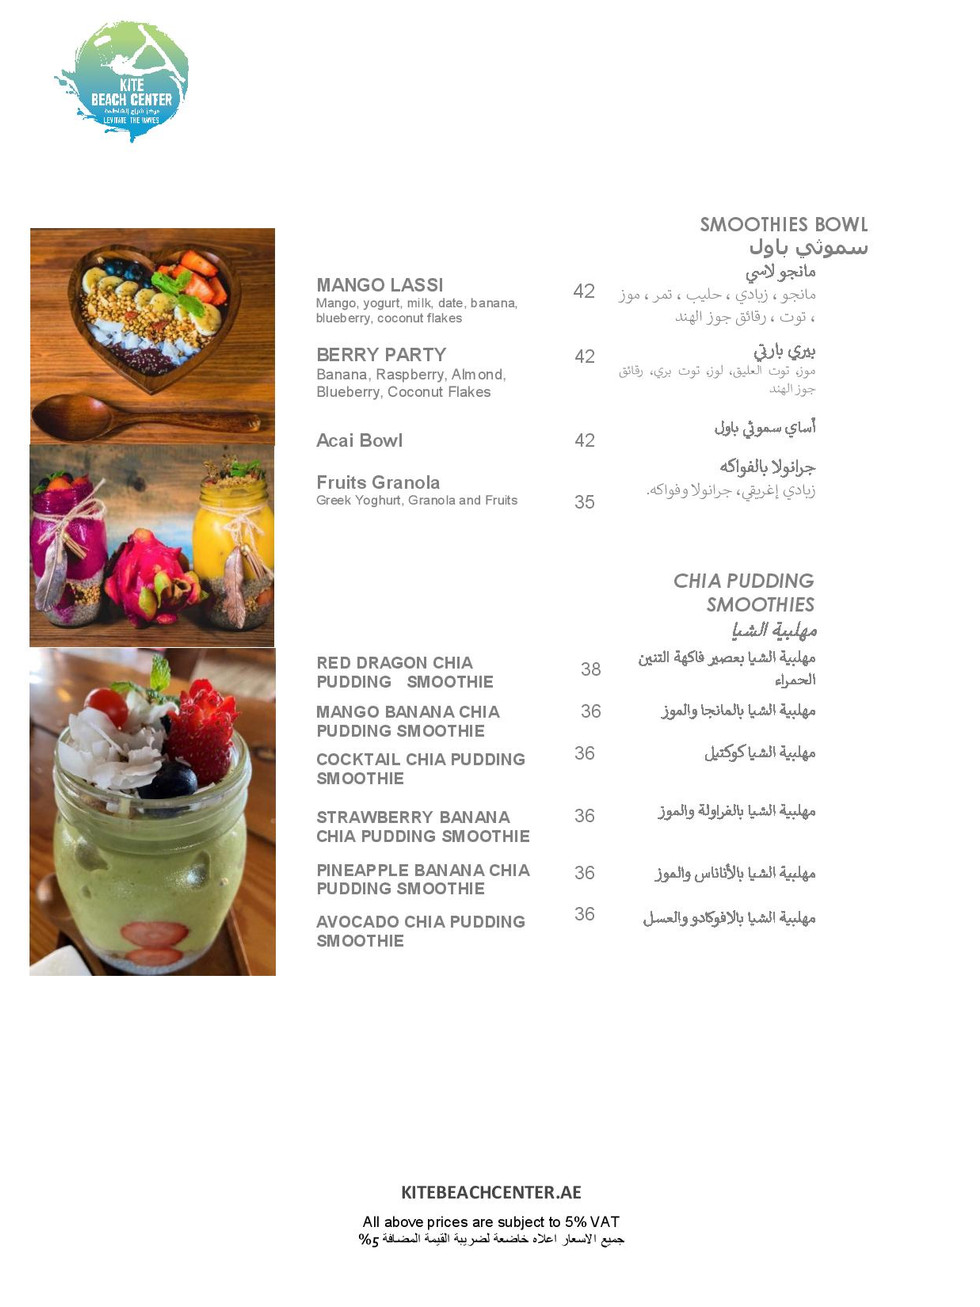 smoothiesnew-page-001.jpg